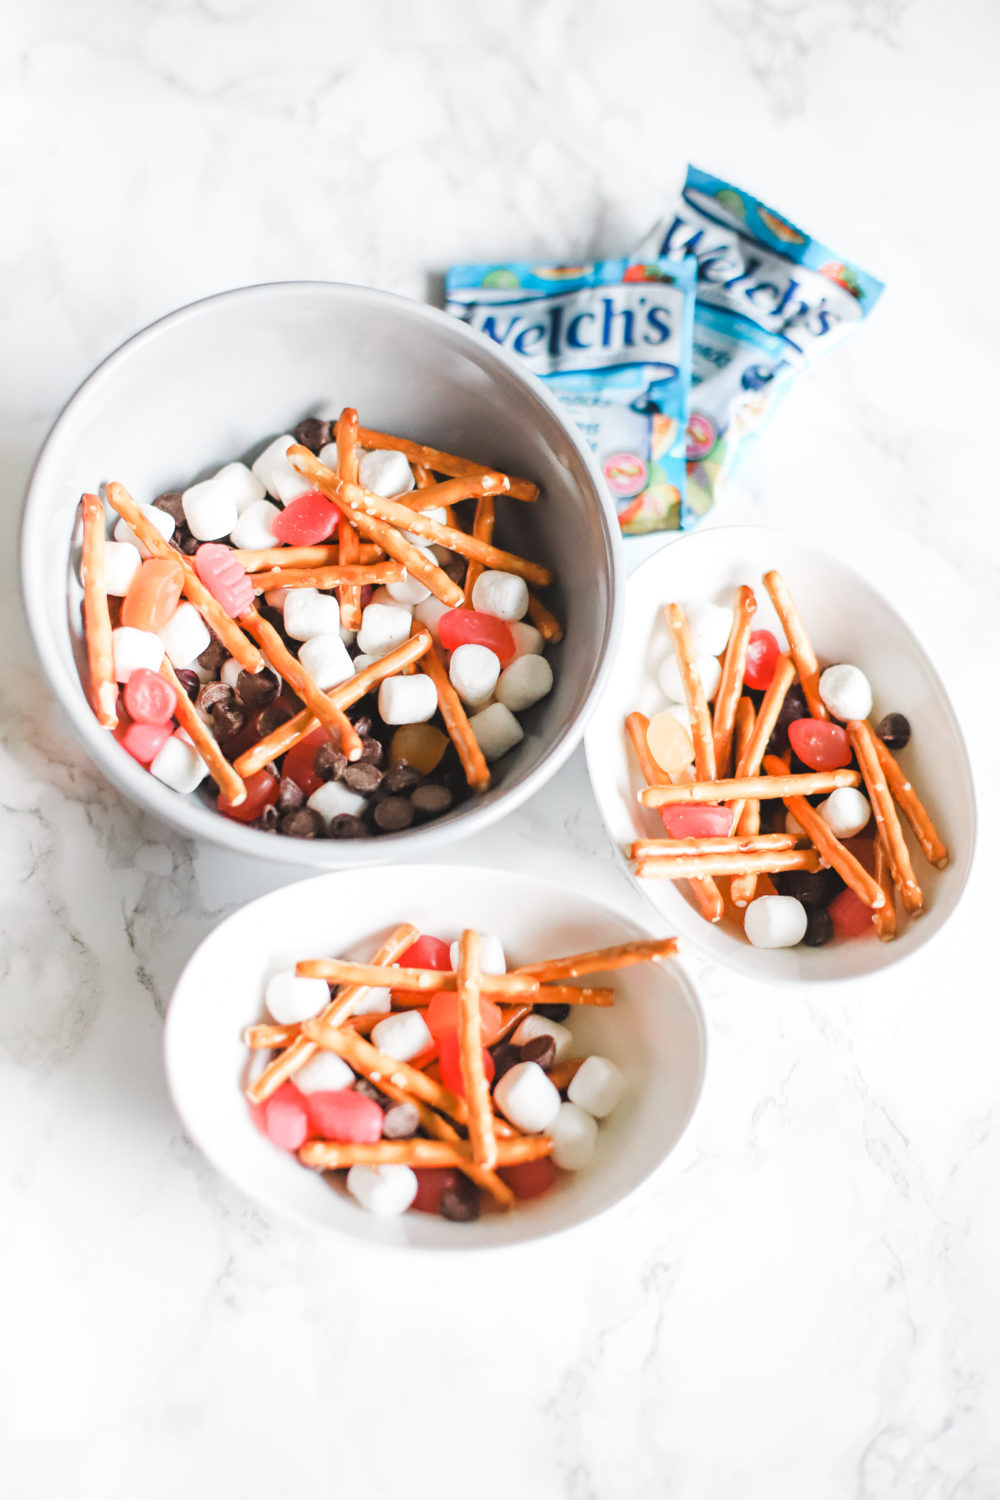 Throw your child's favourite ingredients together to create a snack that's great for summer, travelling, back-to-school lunches and after-school munchies! Lunch Ideas, Lunchbox, Kids Trail Mix, Travelling with Kids, Bonfire, S'mores, Pretzels, Marshmallows, Welch's Fruit Snacks, Fun Food, Road Trip Ideas, Camping with Kids, Glamping, Motherhood, Parenting